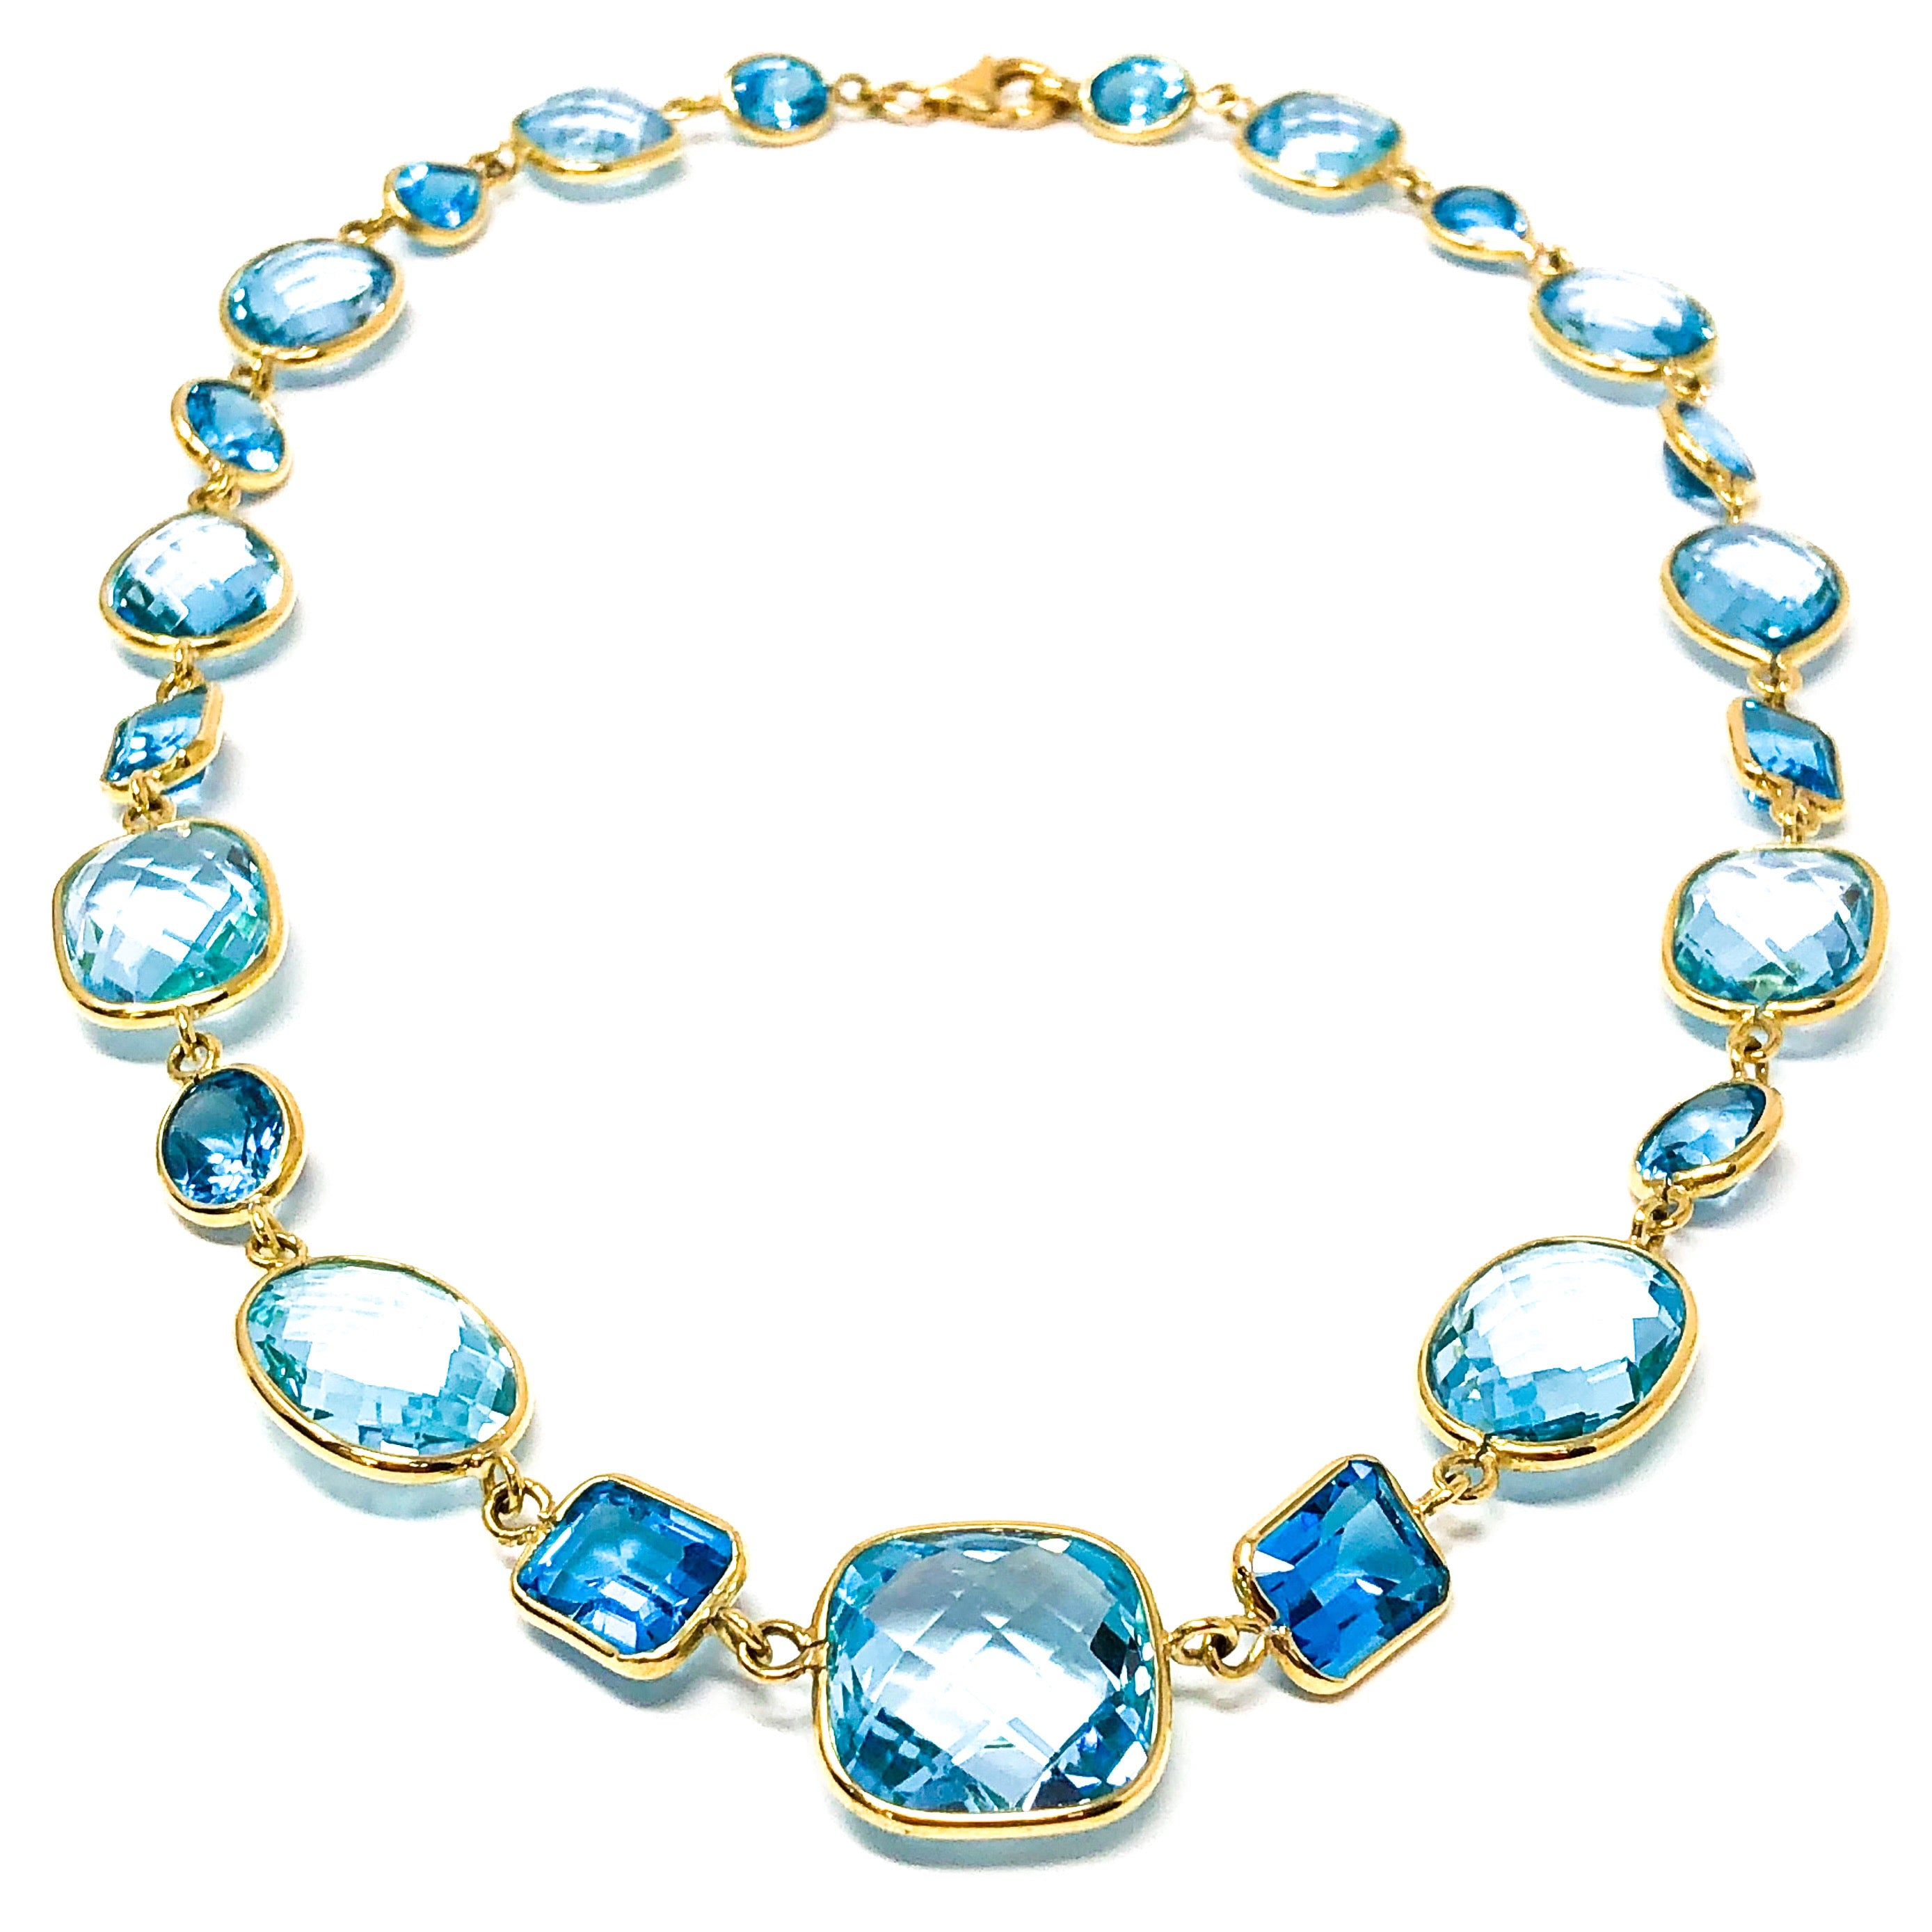 18kt Gold Blue Topaz Necklace